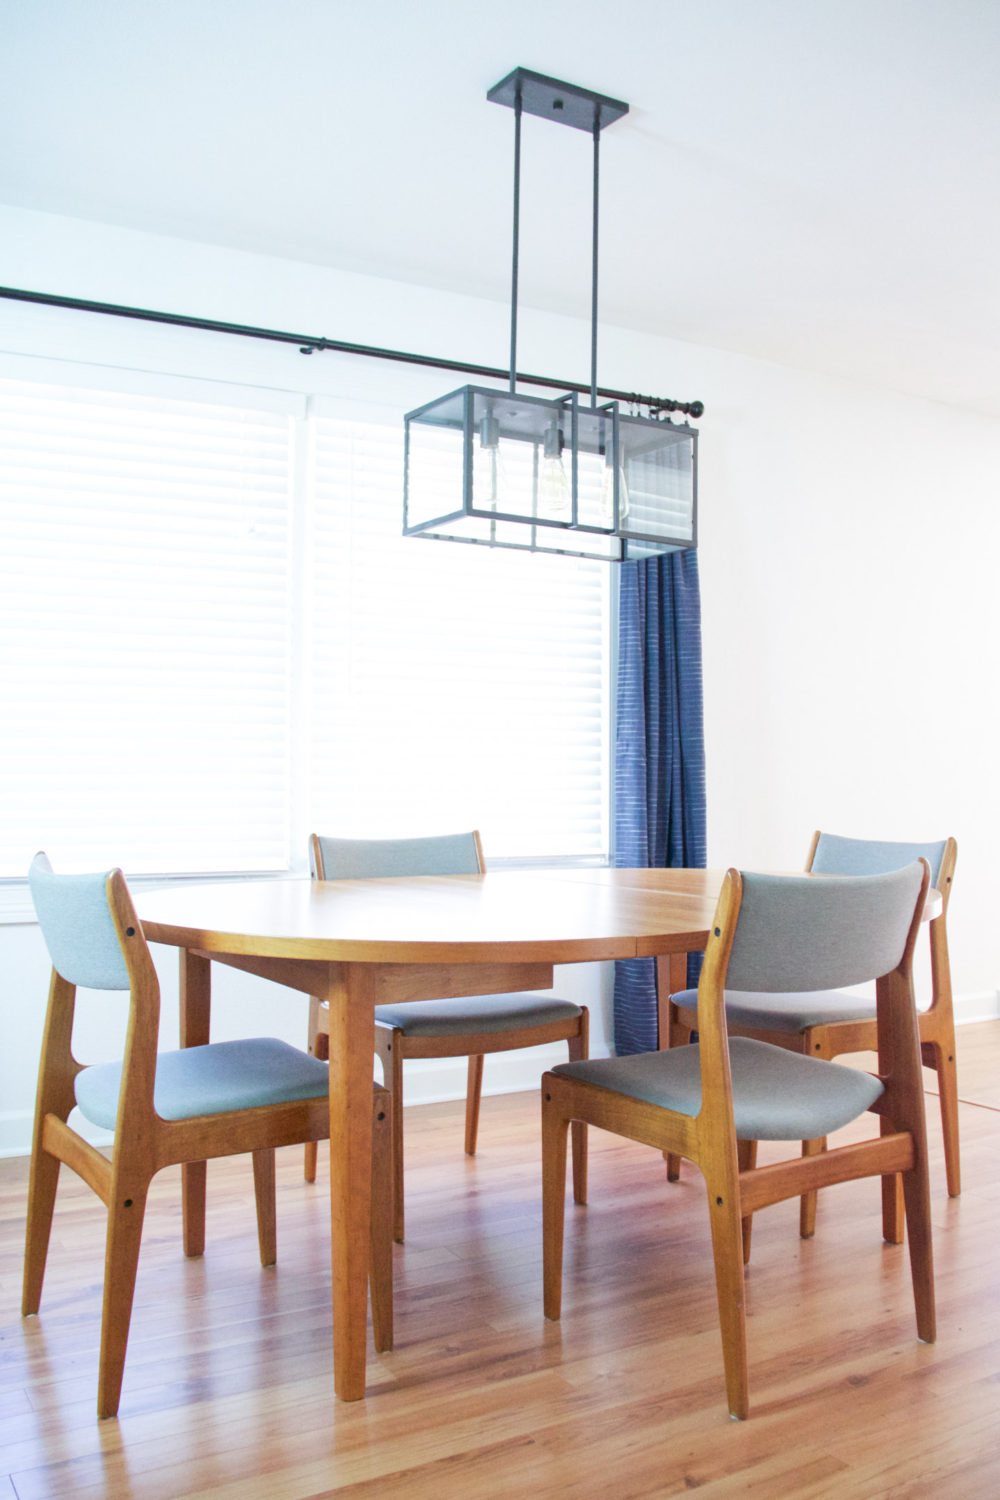 Industrial Modern Dining Room Lighting | Melissa Lynch | melissalynch.com